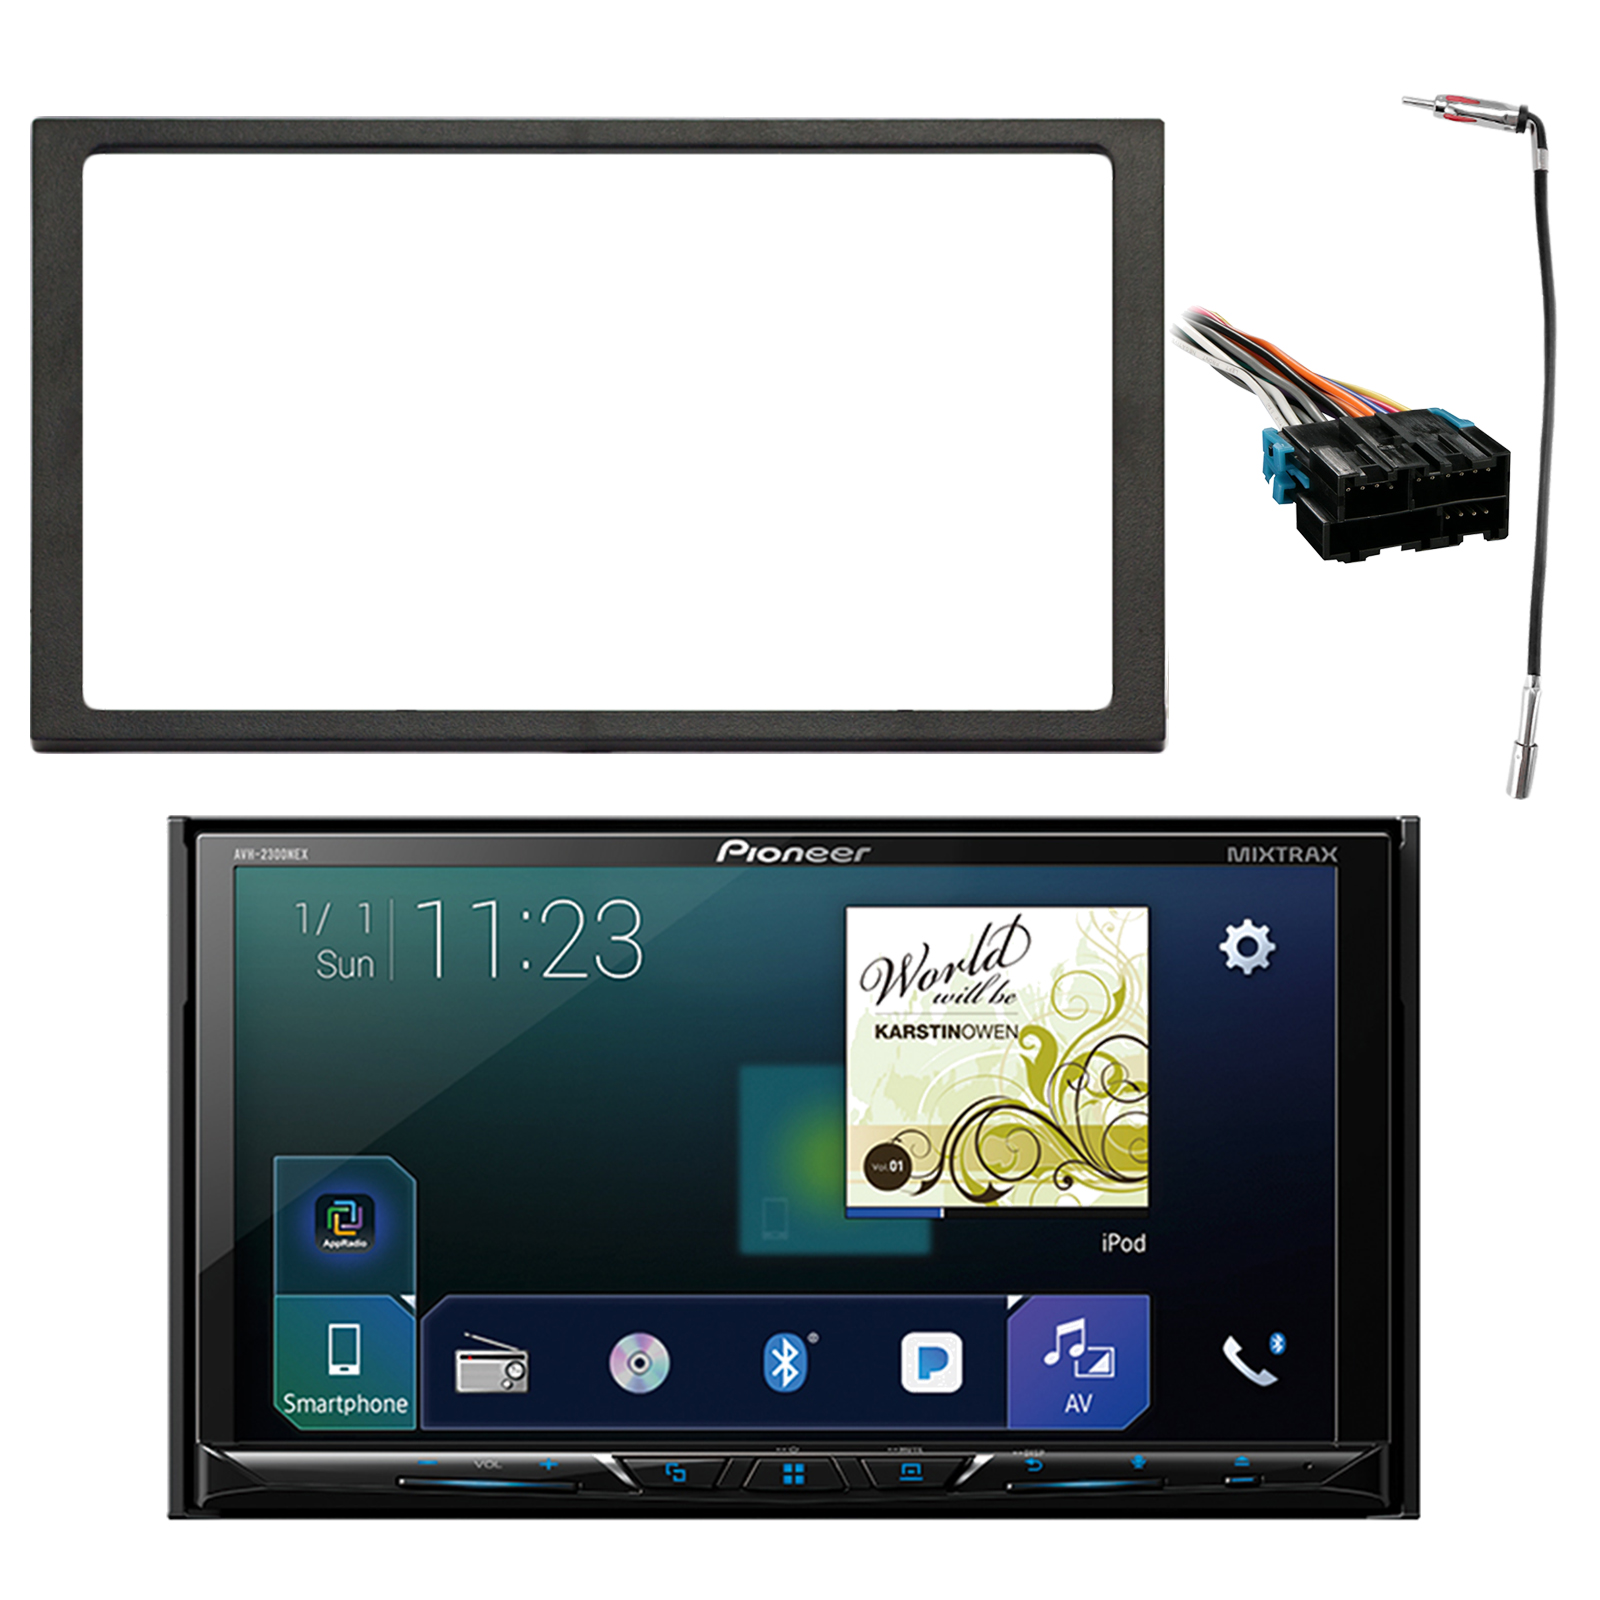 "Pioneer Double Din Multimedia DVD Bluetooth SiriusXM-Ready Receiver w/ 7"" WVGA Display, Enrock Double DIN Install Dash Kit, Metra Radio Wiring Harness, Enrock Antenna Adapter (Select 1994-2005 Vehicle"